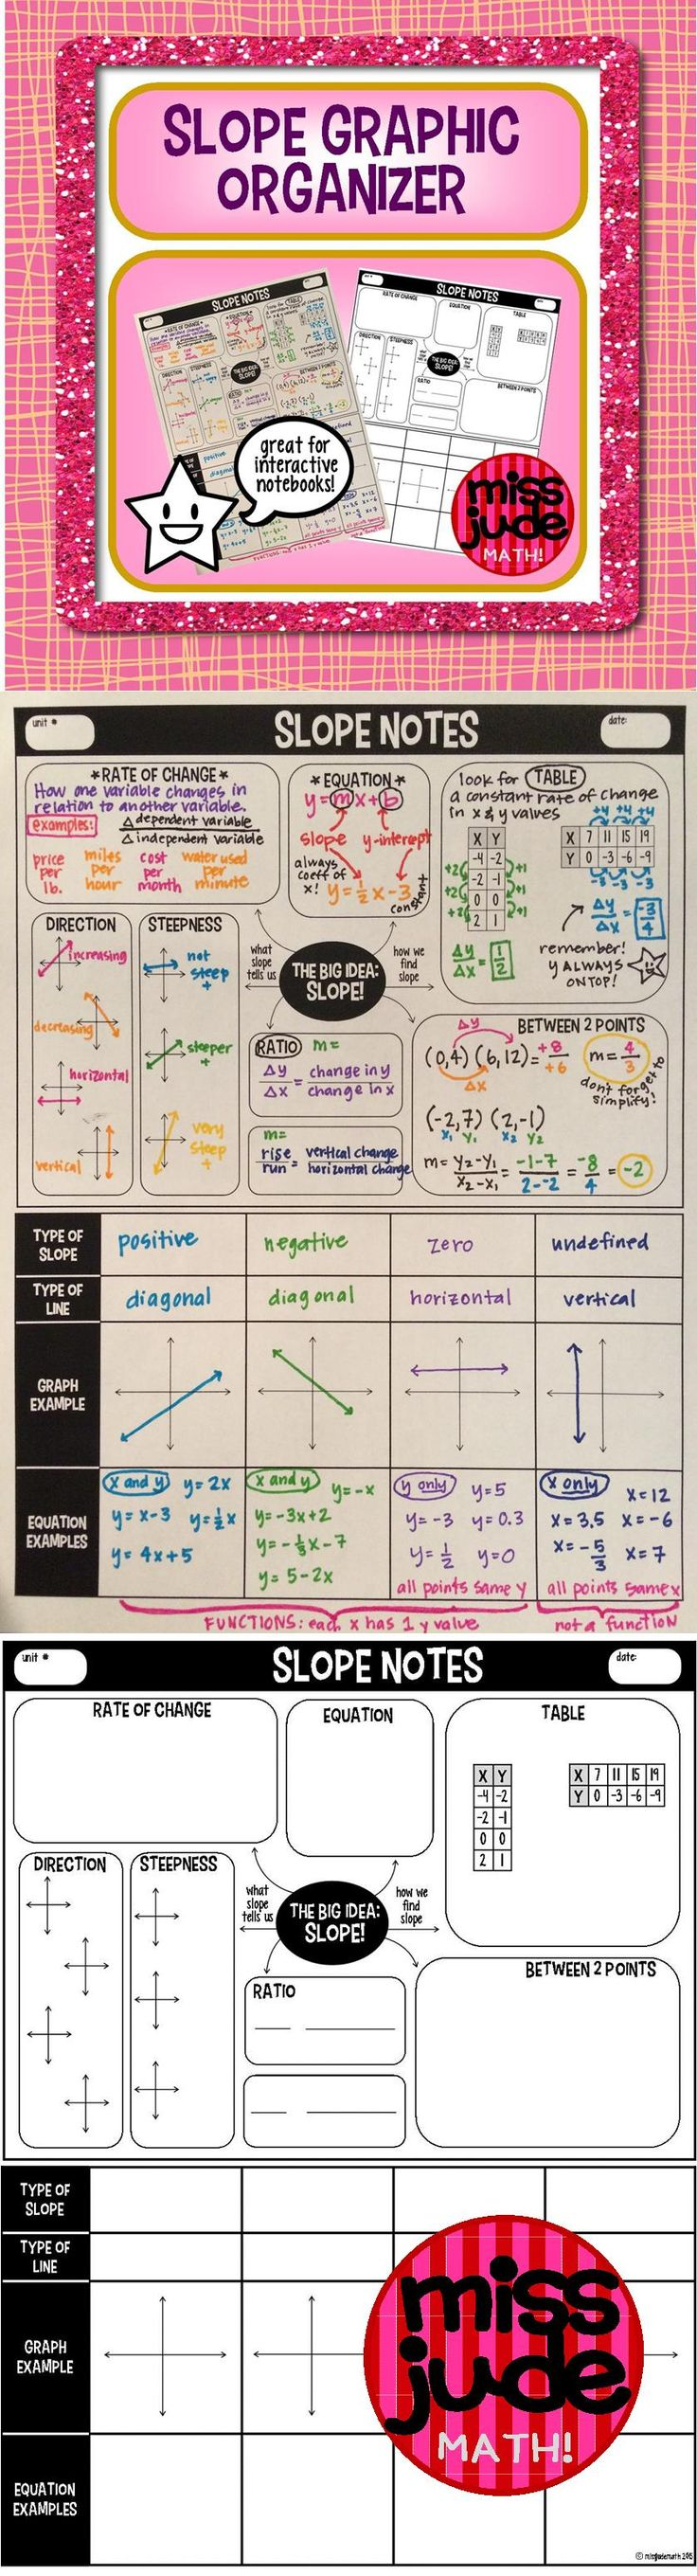 All-in-one slope notes page